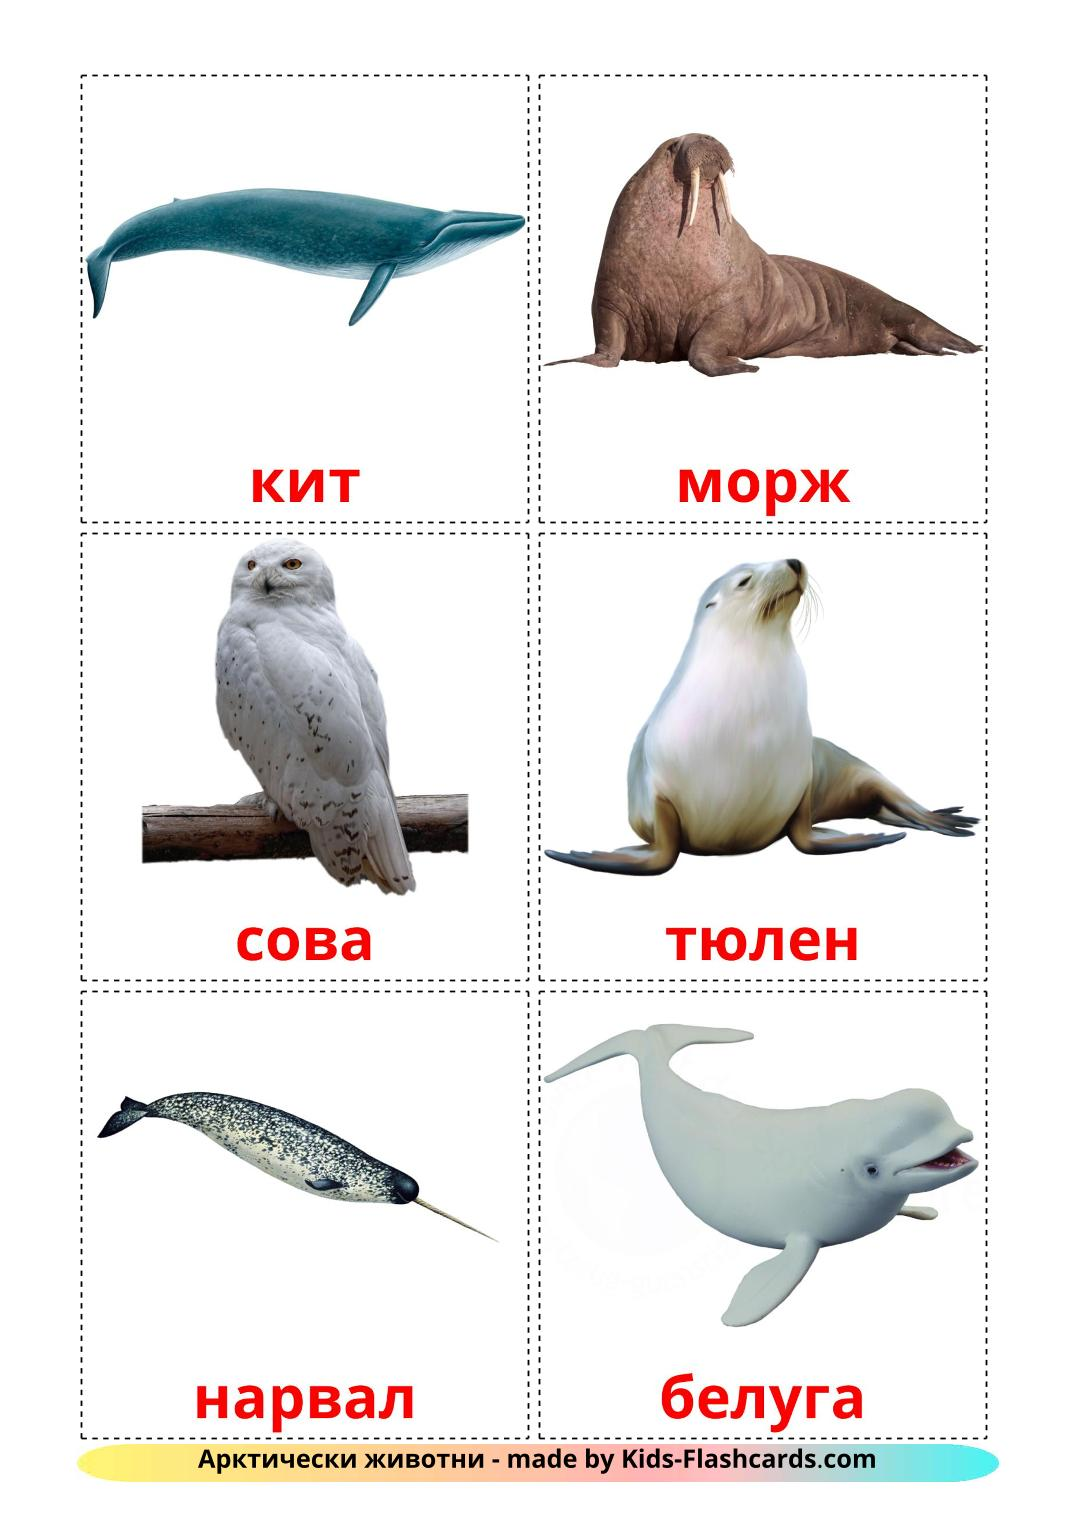 Arctic animals - 14 Free Printable bulgarian Flashcards